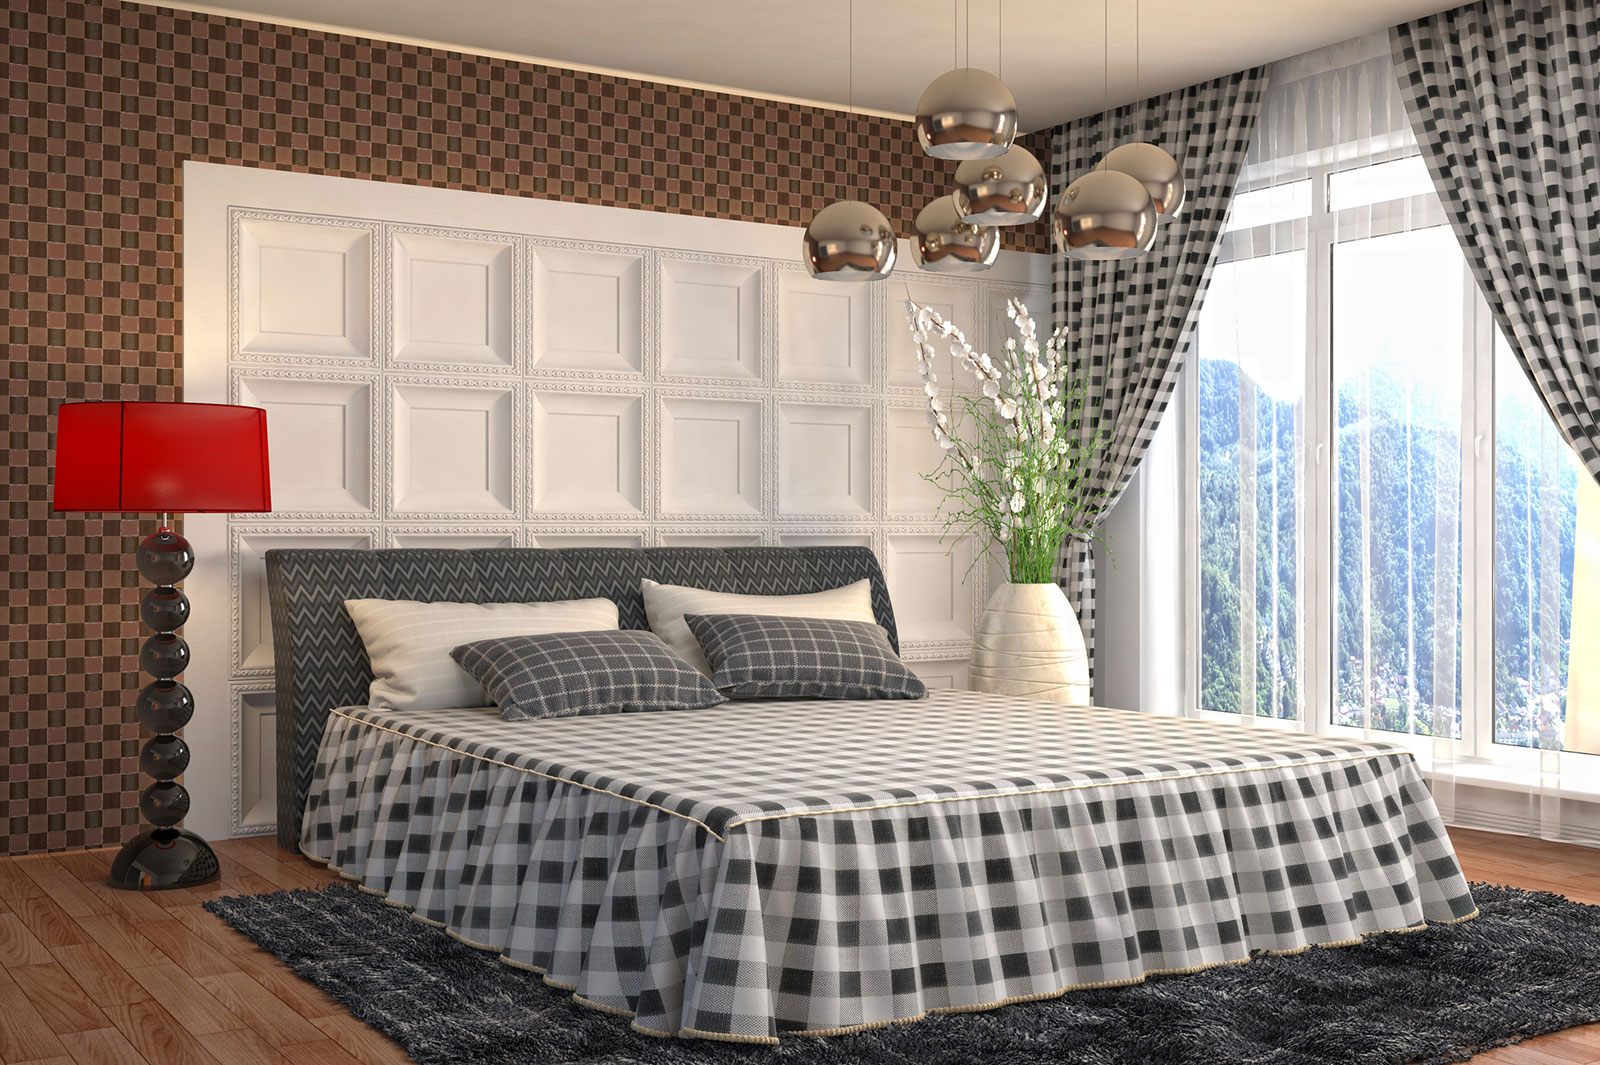 Picture of: Fitted Bedspread Lovetoknow